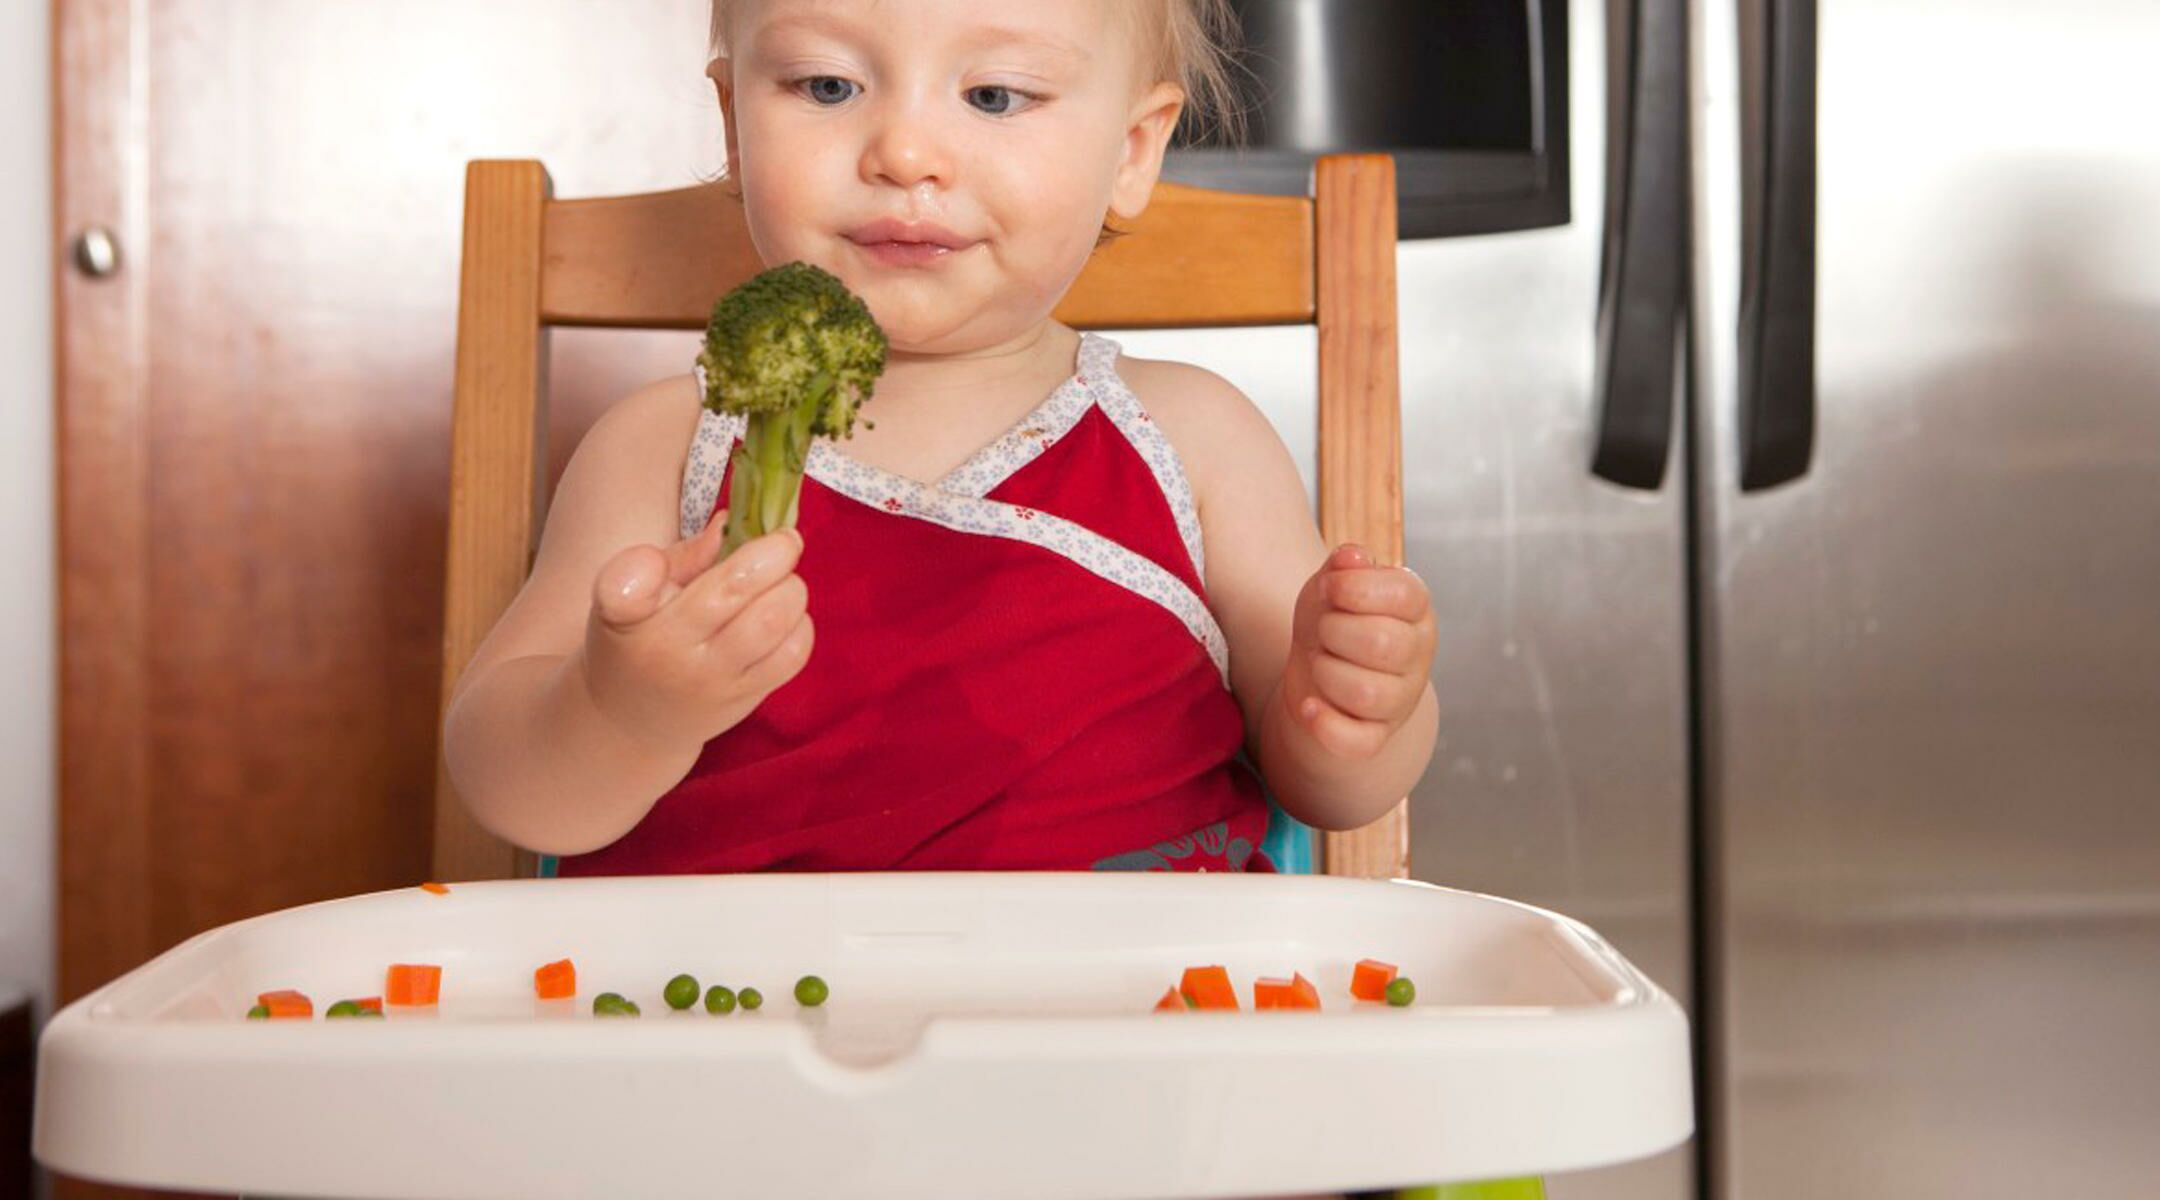 What Baby Should Eat for Lunch